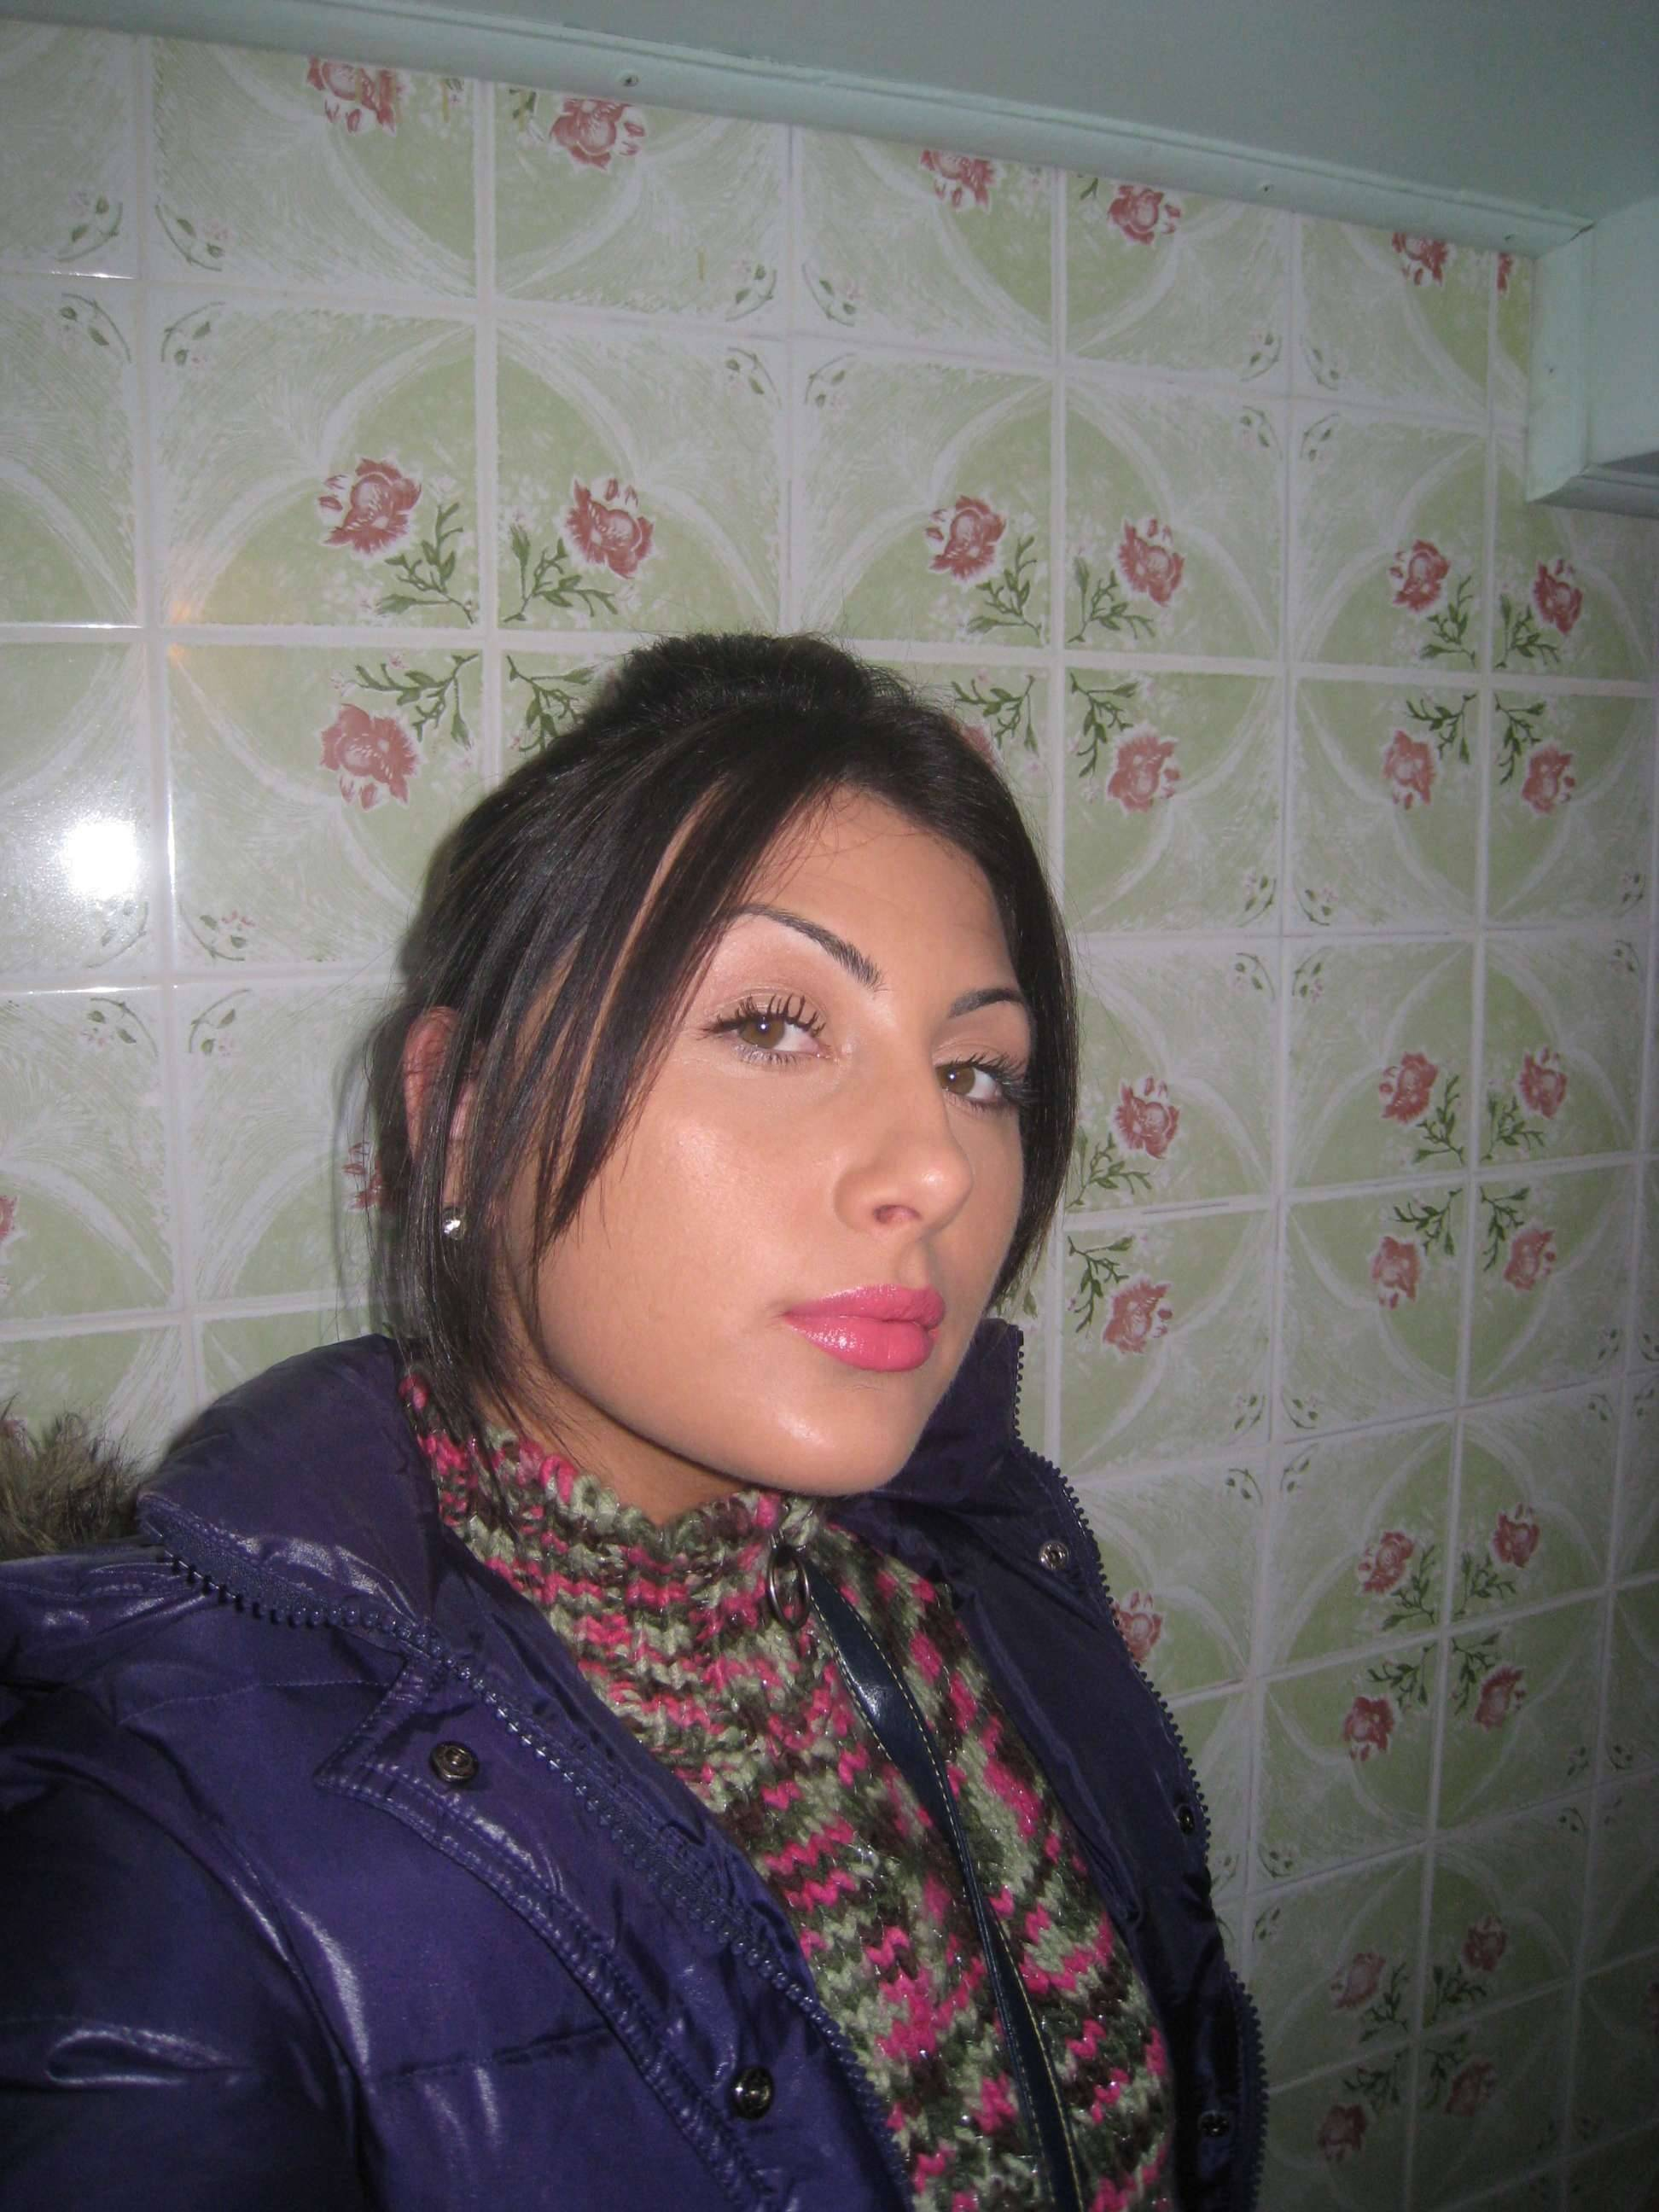 constanta dating site Femmes roumain, site de rencontres roumain gratuit - résultats de la recherche displaying results 1 - 12 from 1124 totally found page 1 from 94.